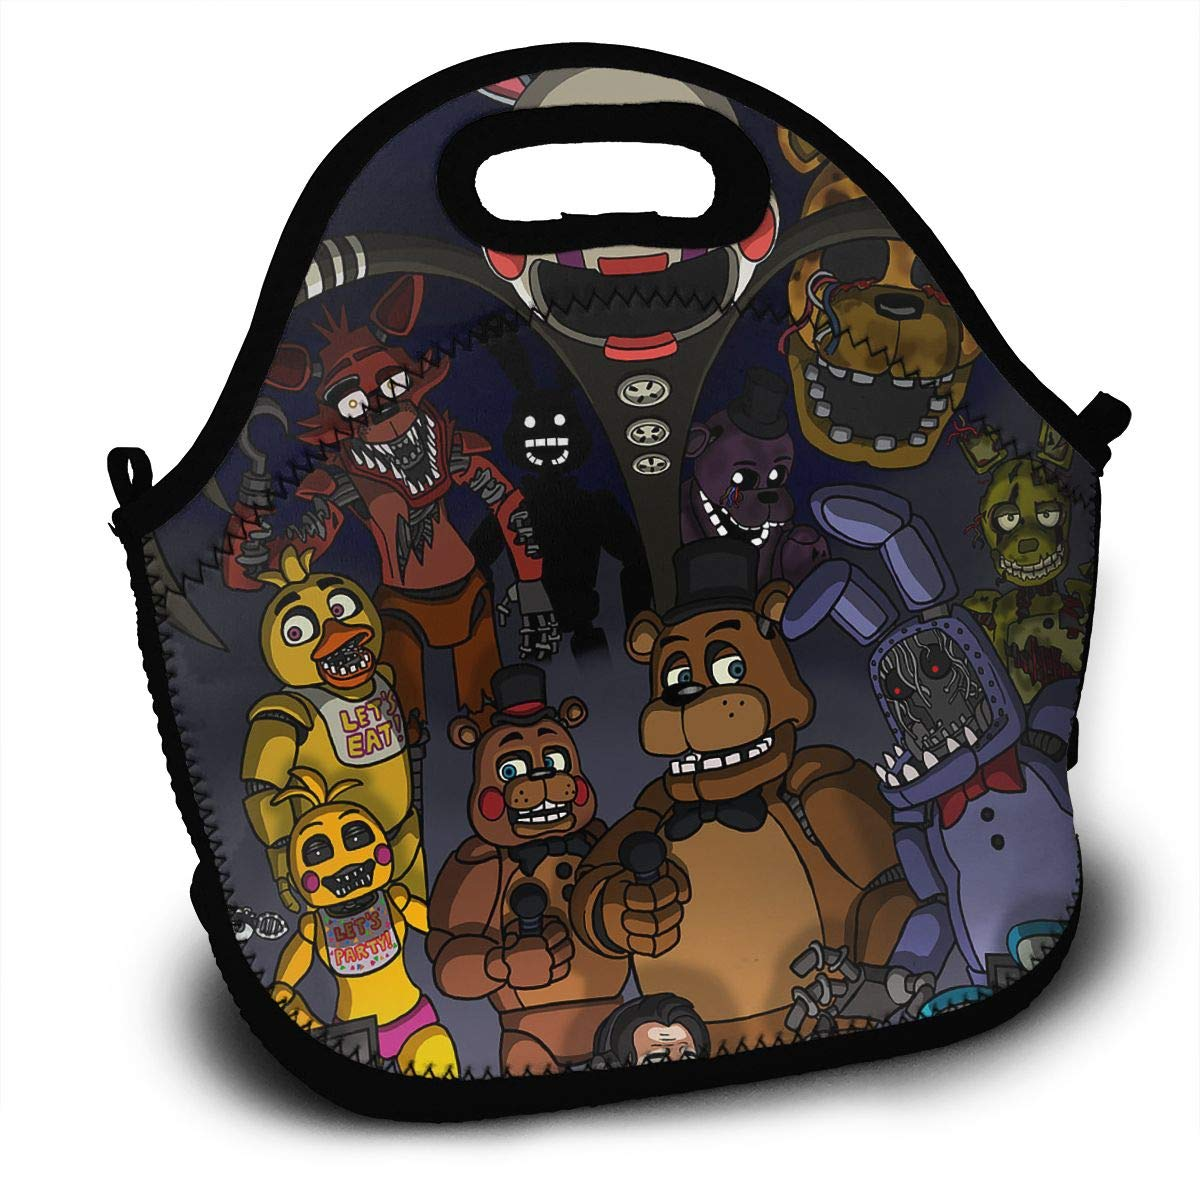 8a770ed8561a Amazon.com - Sunmoonet Lunch Tote Bag Five-Nights-at-Freddy Bento ...